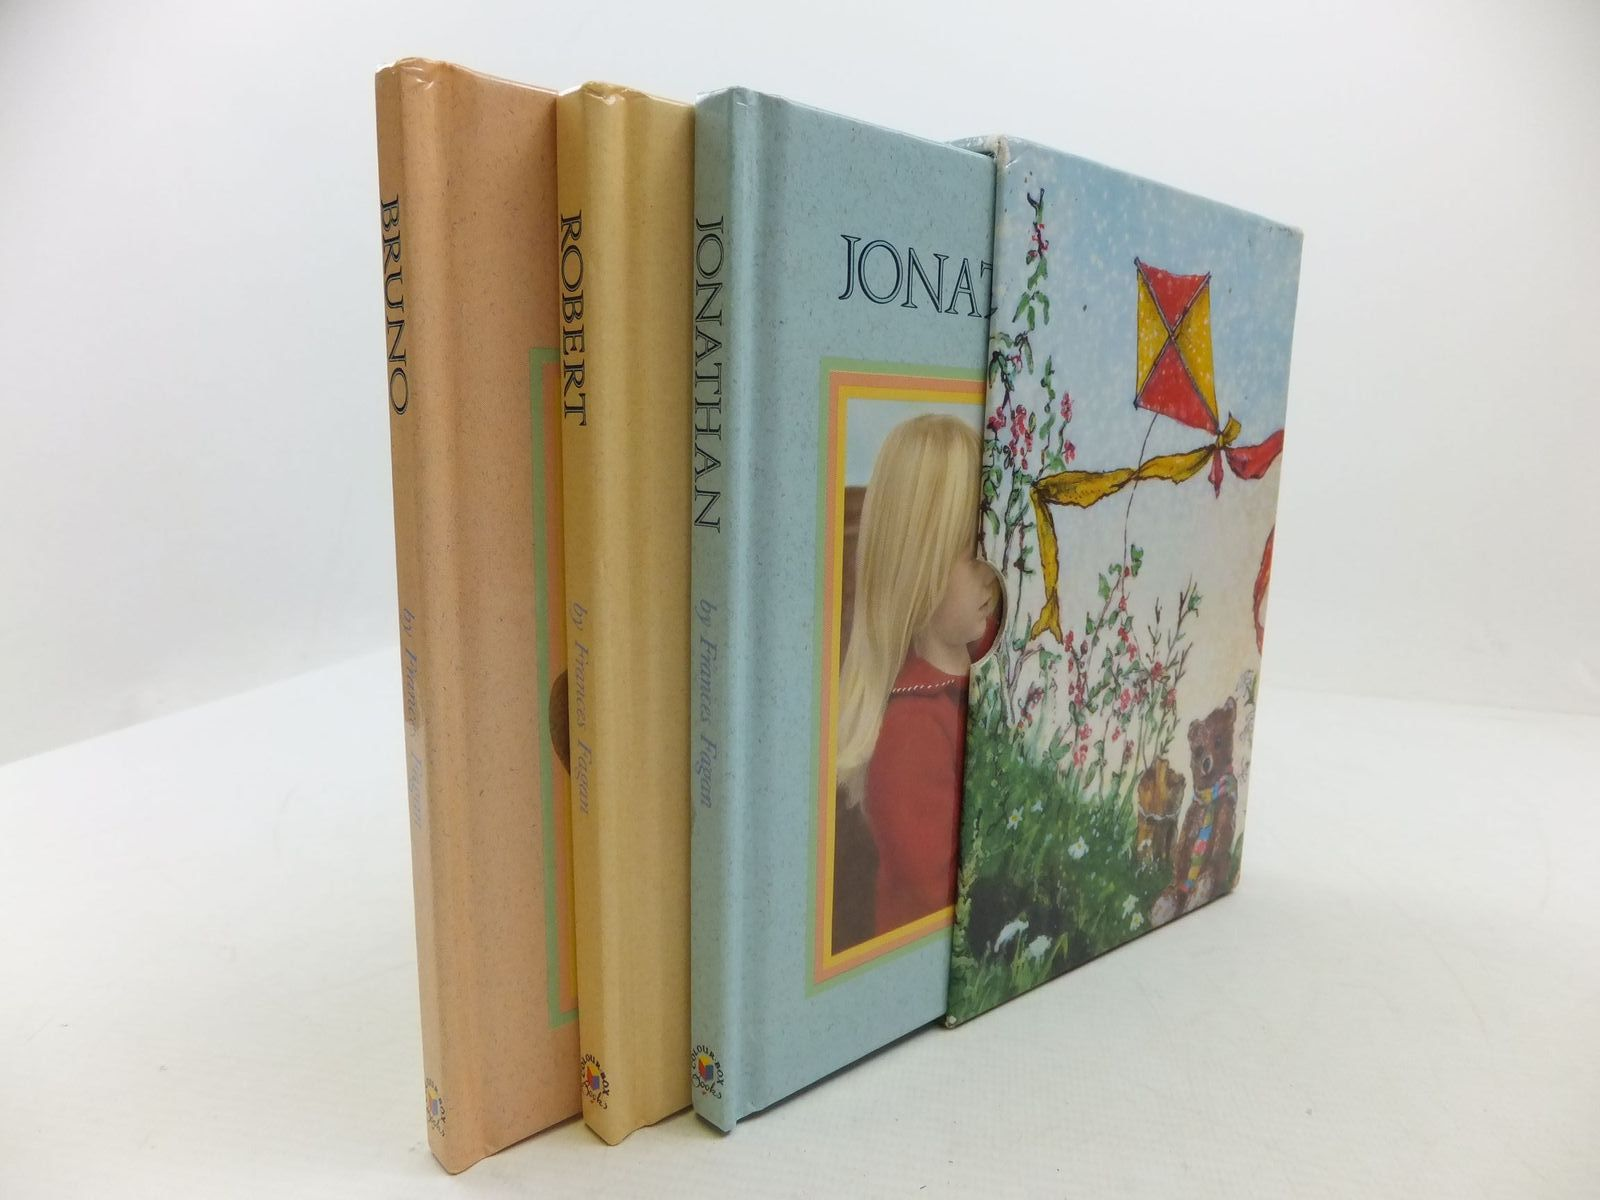 Photo of BRUNO, JONATHAN AND ROBERT written by Fagan, Frances illustrated by Hewitt, Clare published by Colourbox Publishing (STOCK CODE: 1108930)  for sale by Stella & Rose's Books